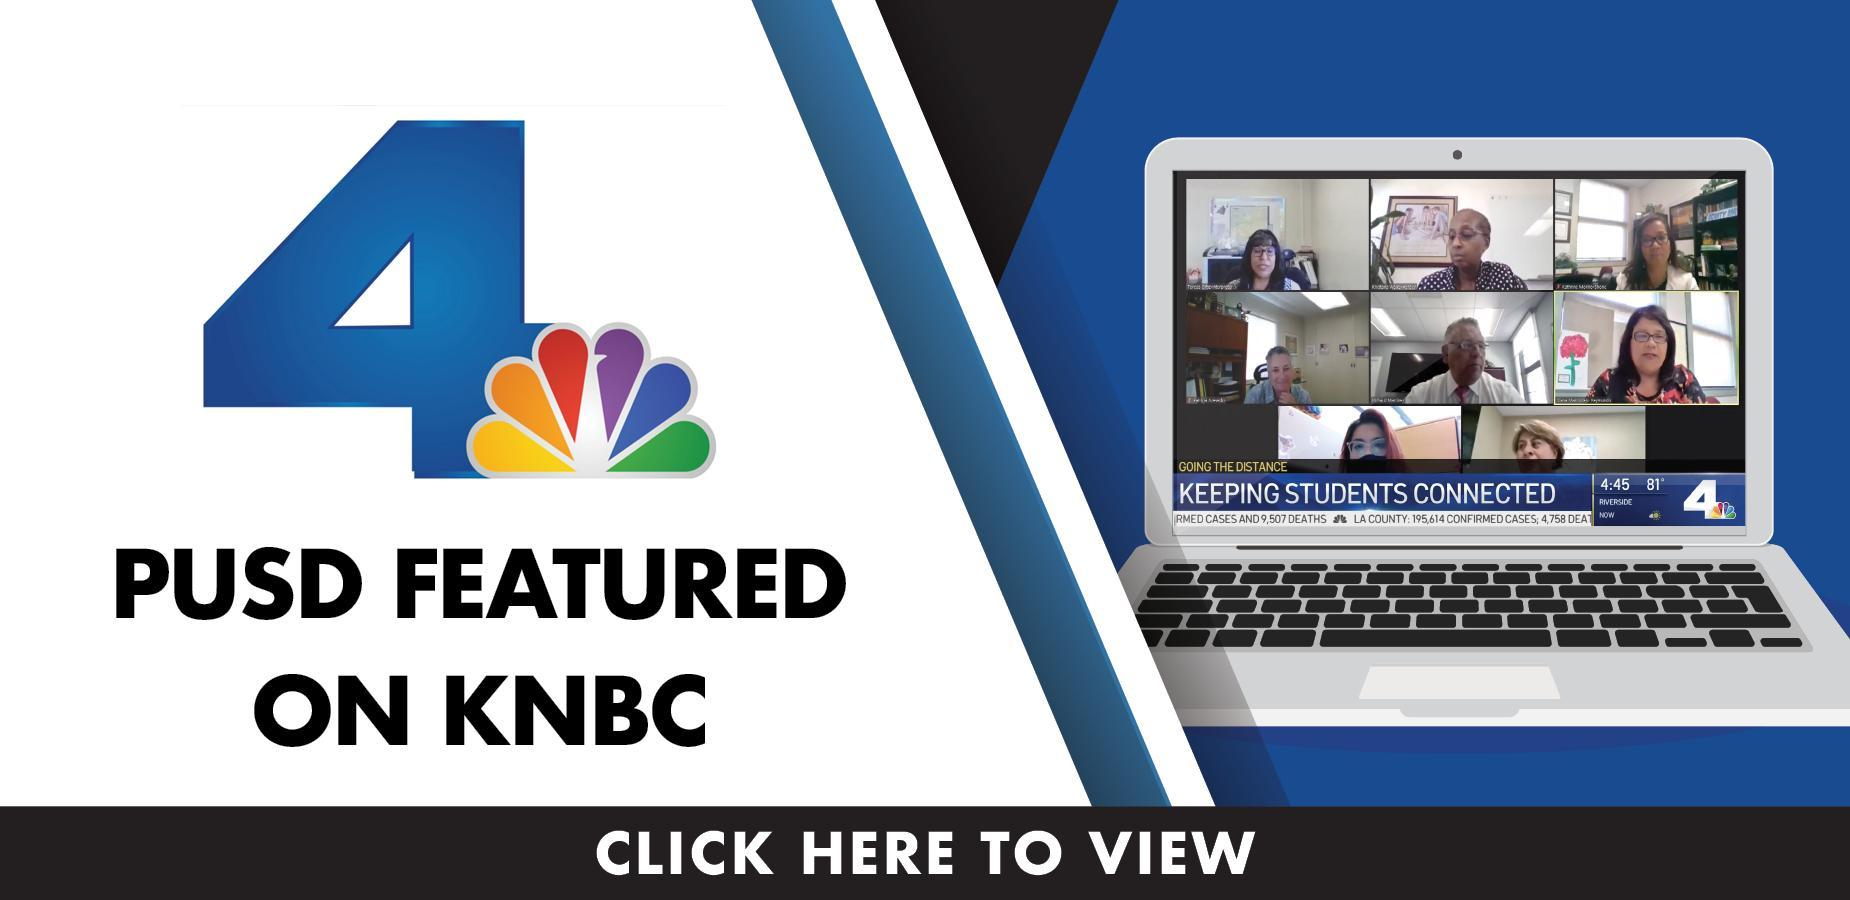 PUSD featured on KNBC news https://proudtobe.pusd.org/apps/video/watch.jsp?v=278955